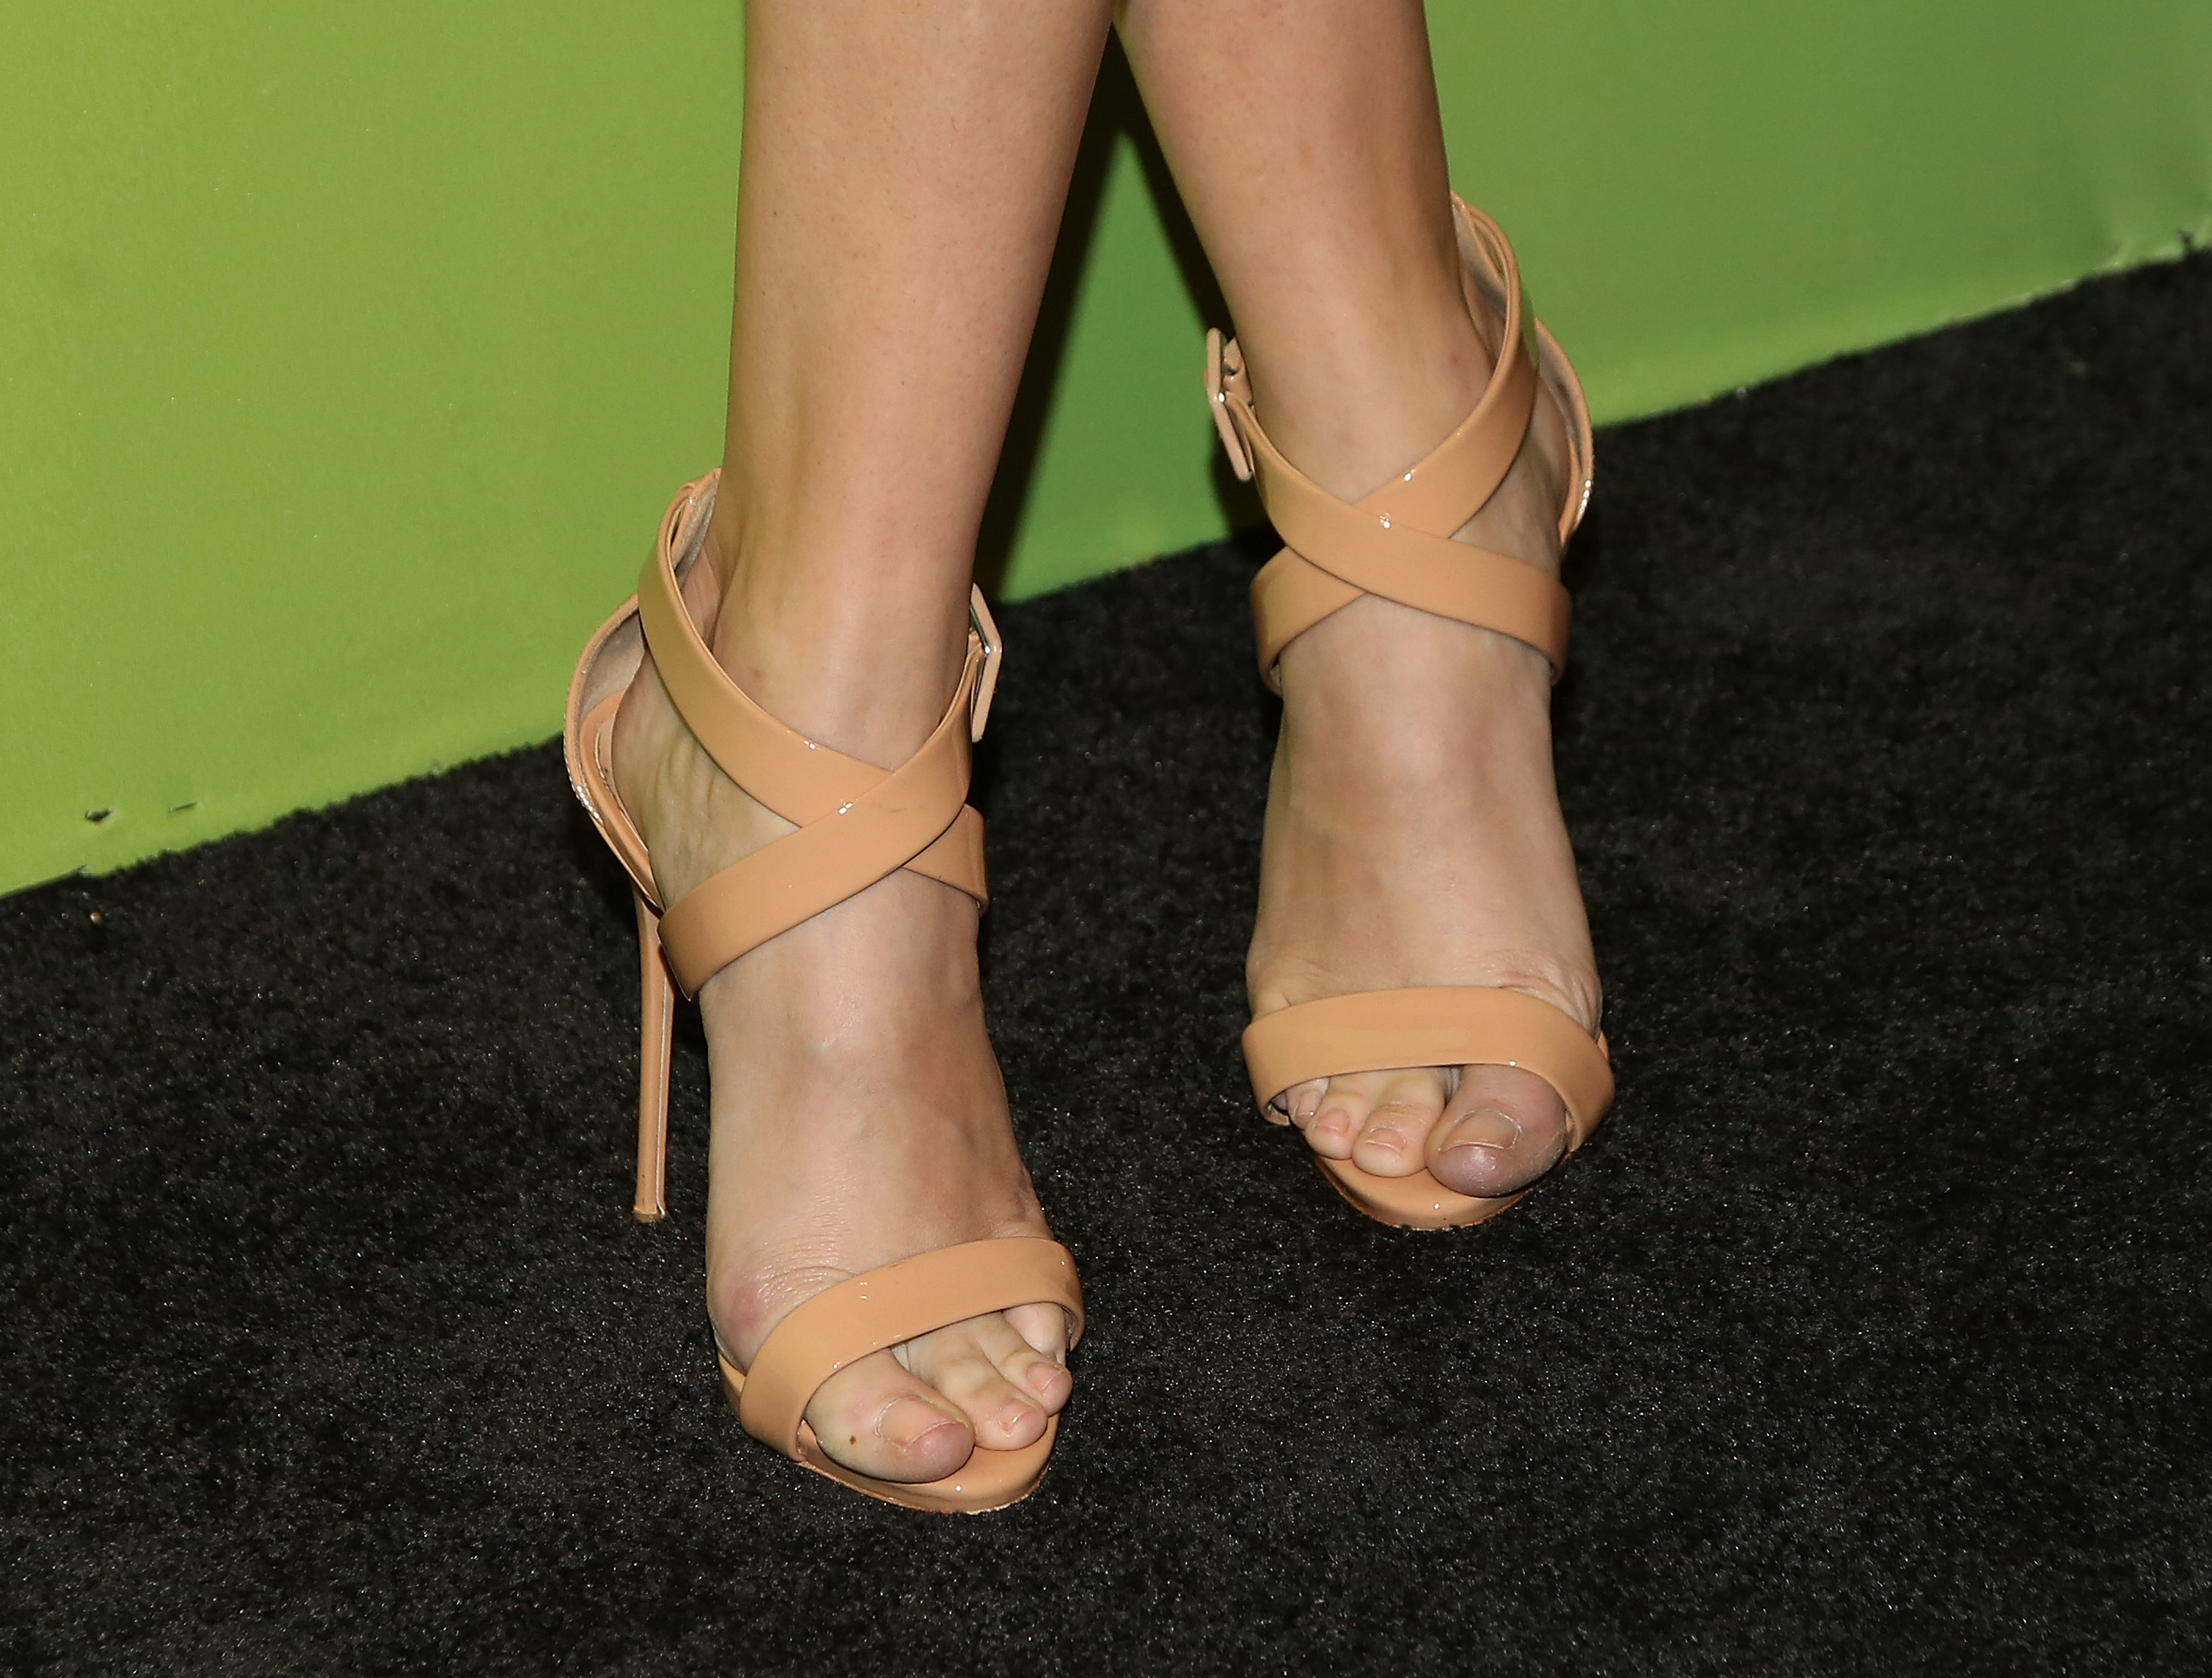 This Danielle panabaker nude feet think